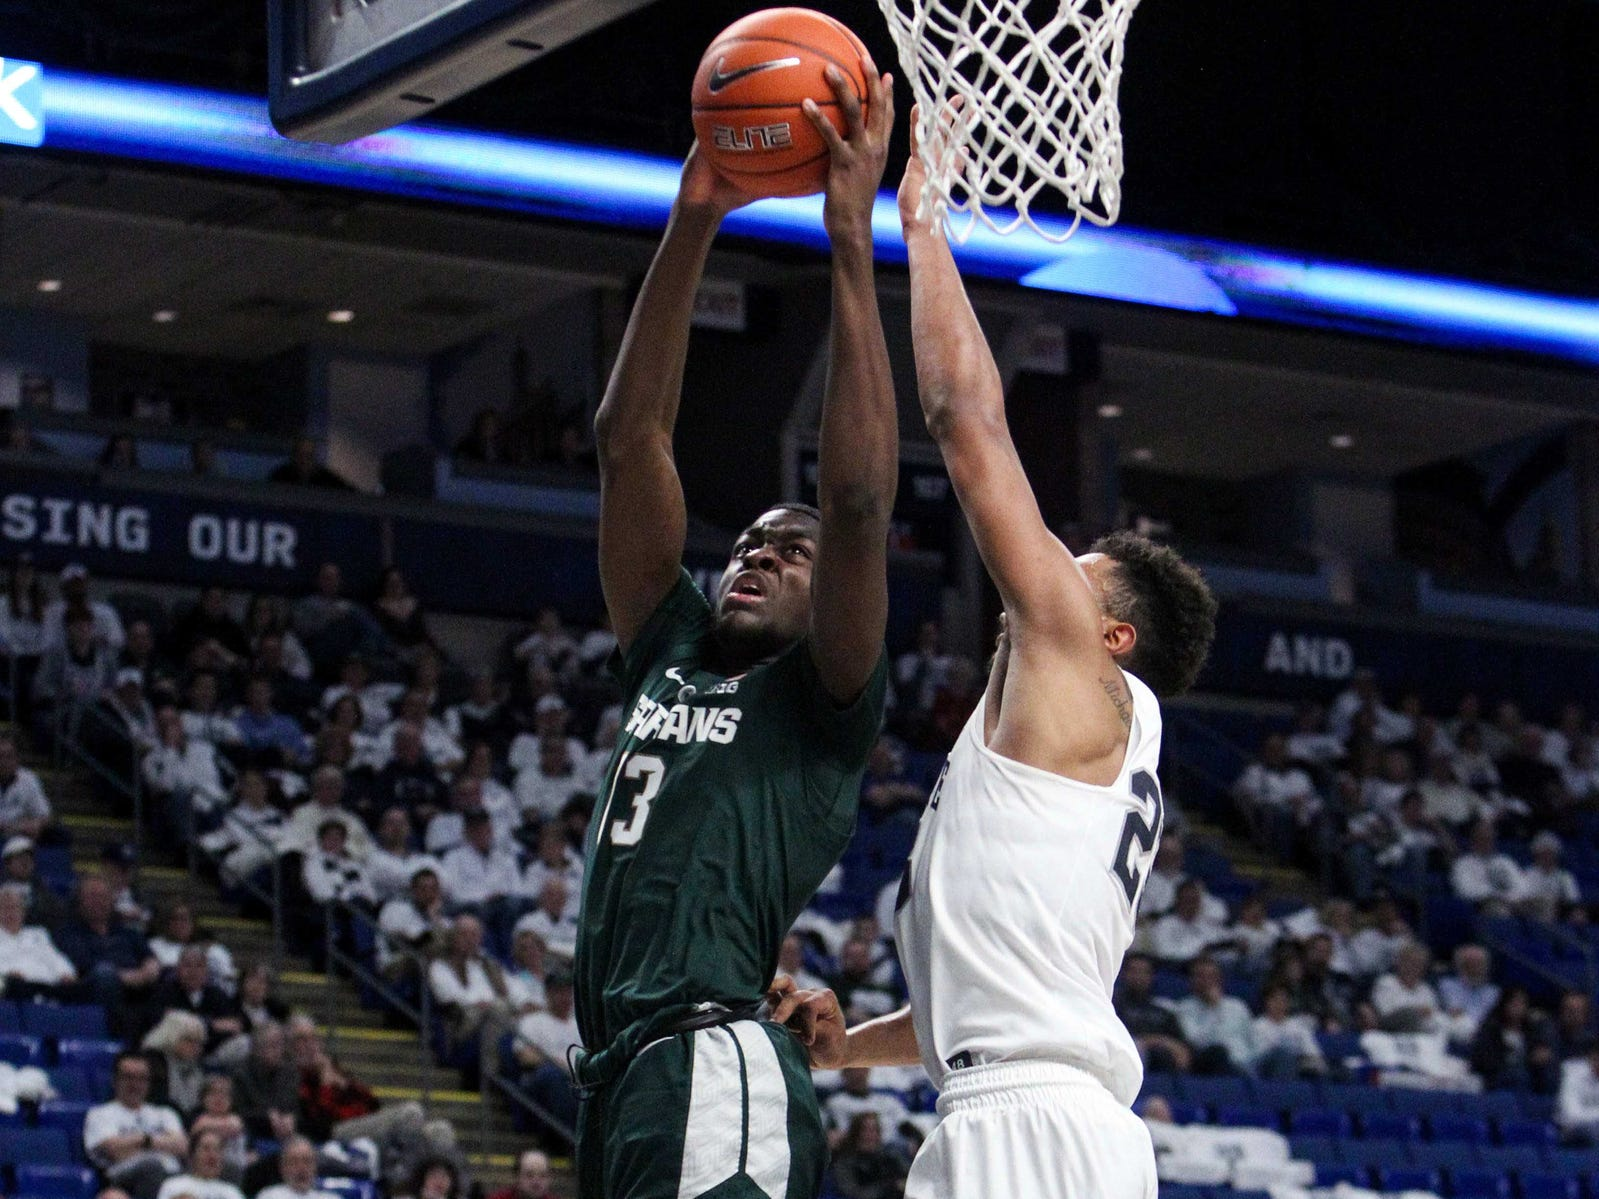 Michigan State forward Gabe Brown drives to the basket as Penn State guard Josh Reaves defends in the second half in State College, Pa., Sunday, Jan. 13, 2019.